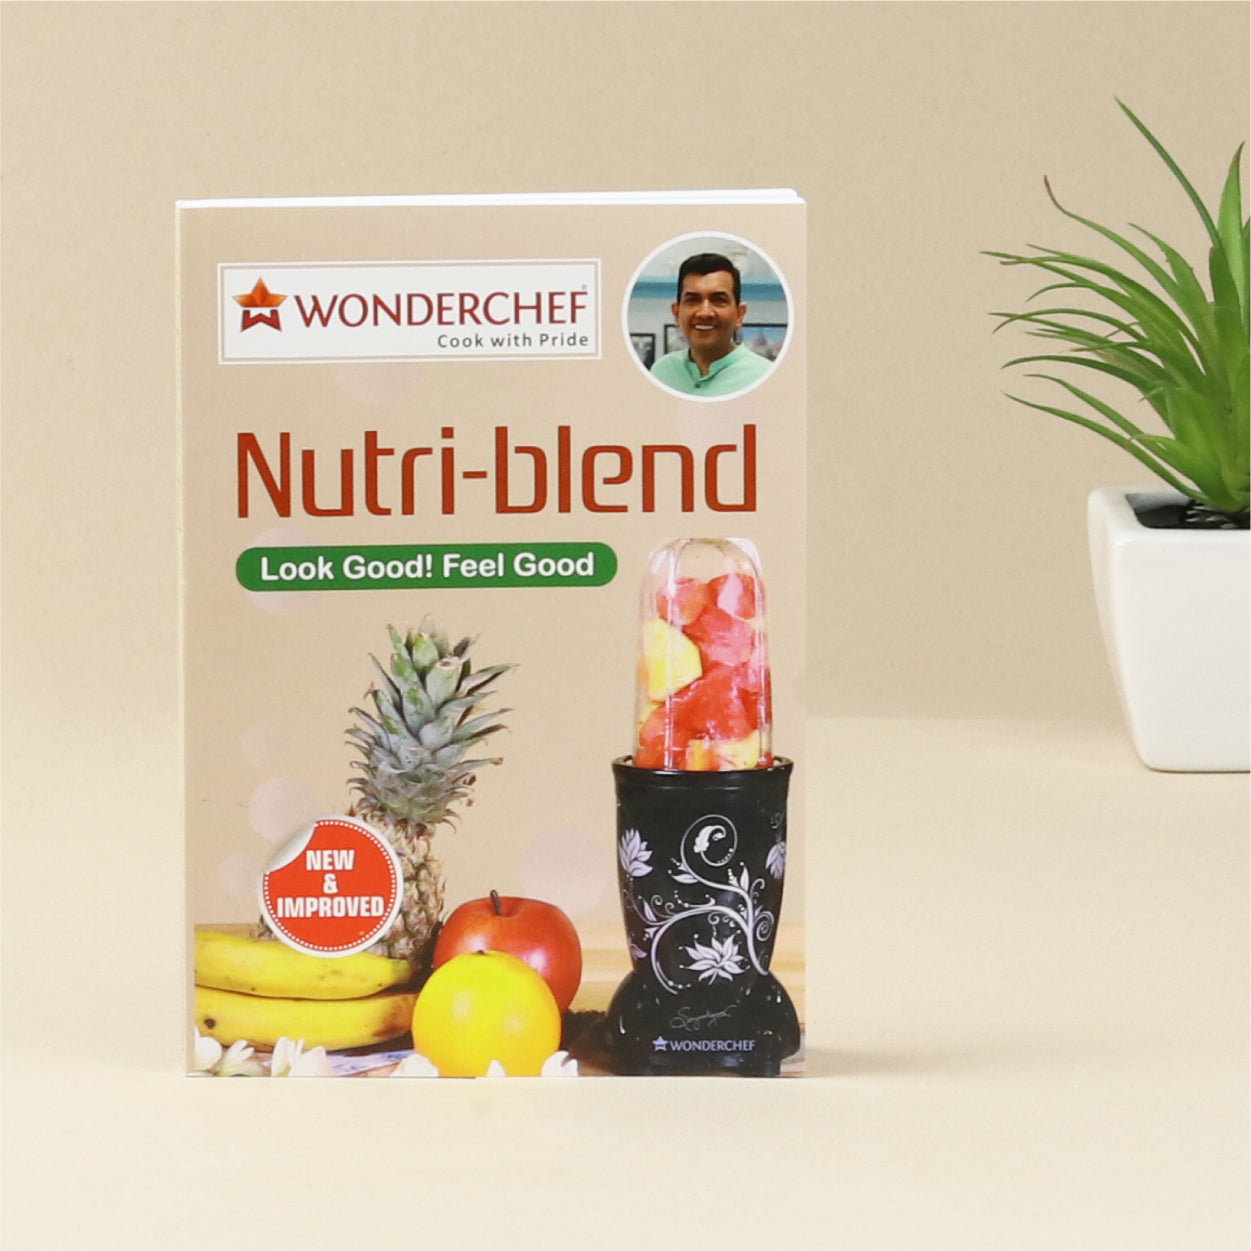 Nutri-blend, 400W, 22000 RPM Mixer-Grinder, Blender, SS Blades, 2 unbreakable Jars, 2 Years warranty, Champagne, includes Exclusive Recipe book by Chef Sanjeev Kapoor